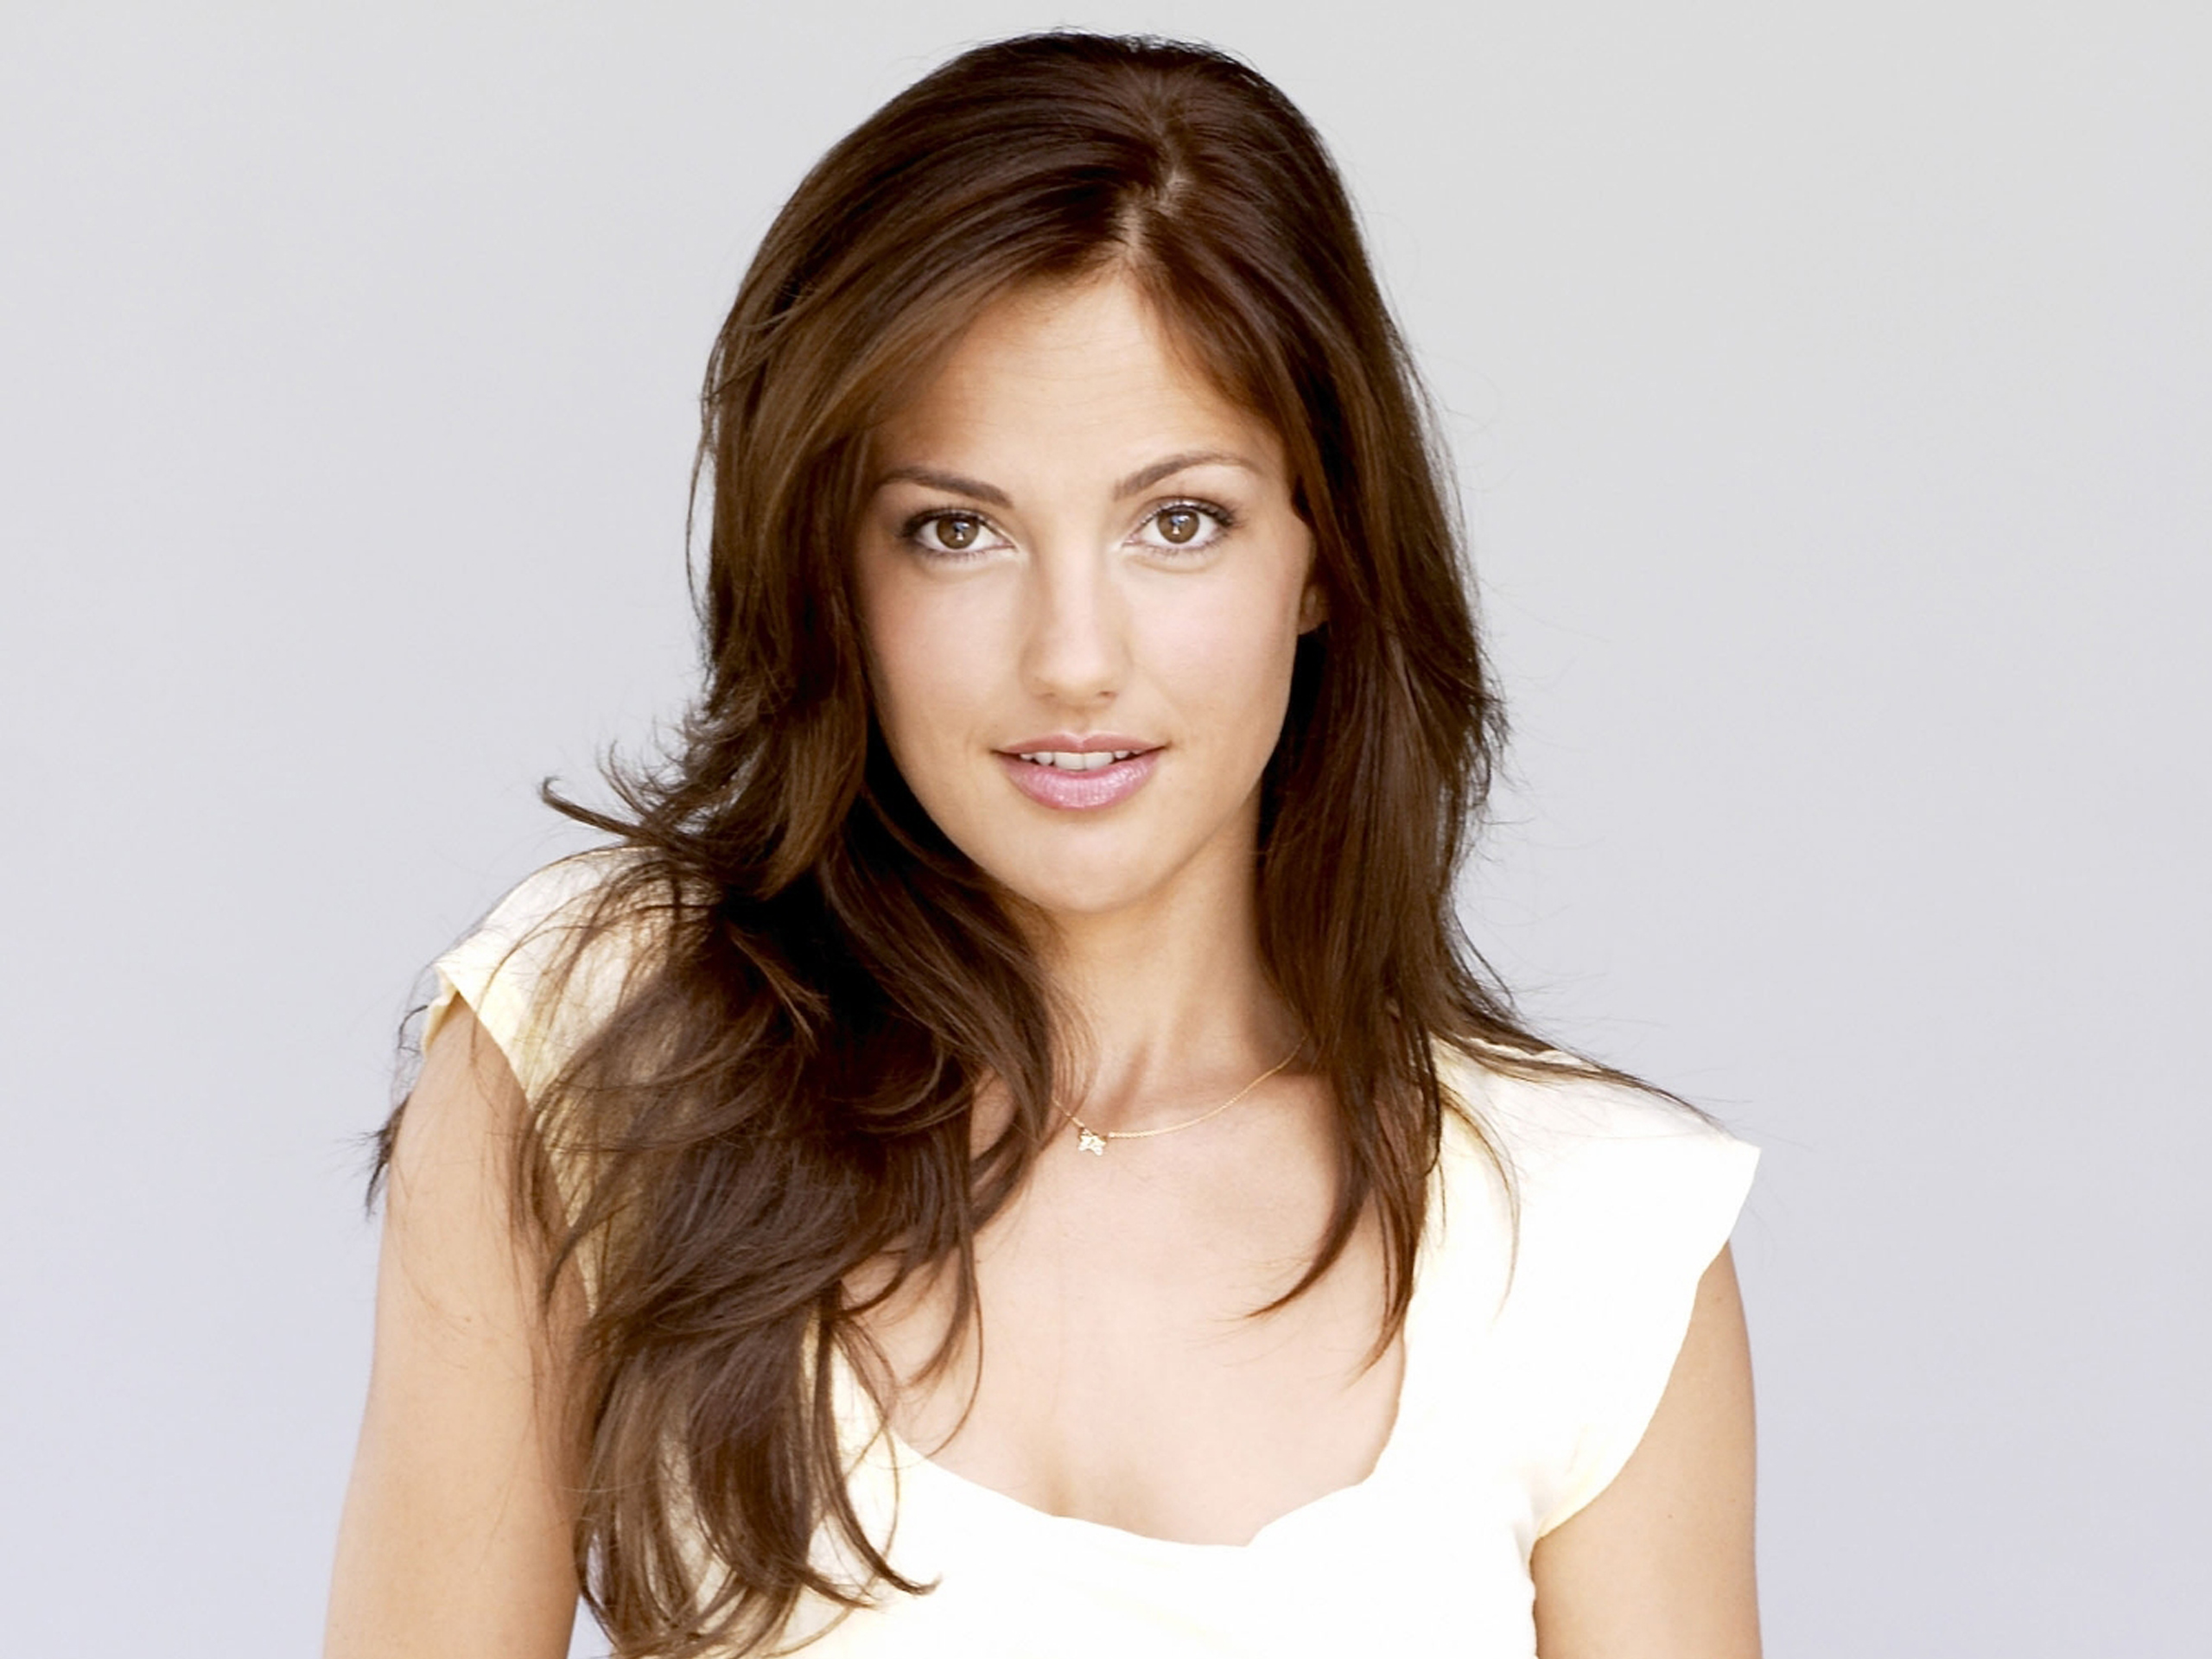 Cute Minka Kelly